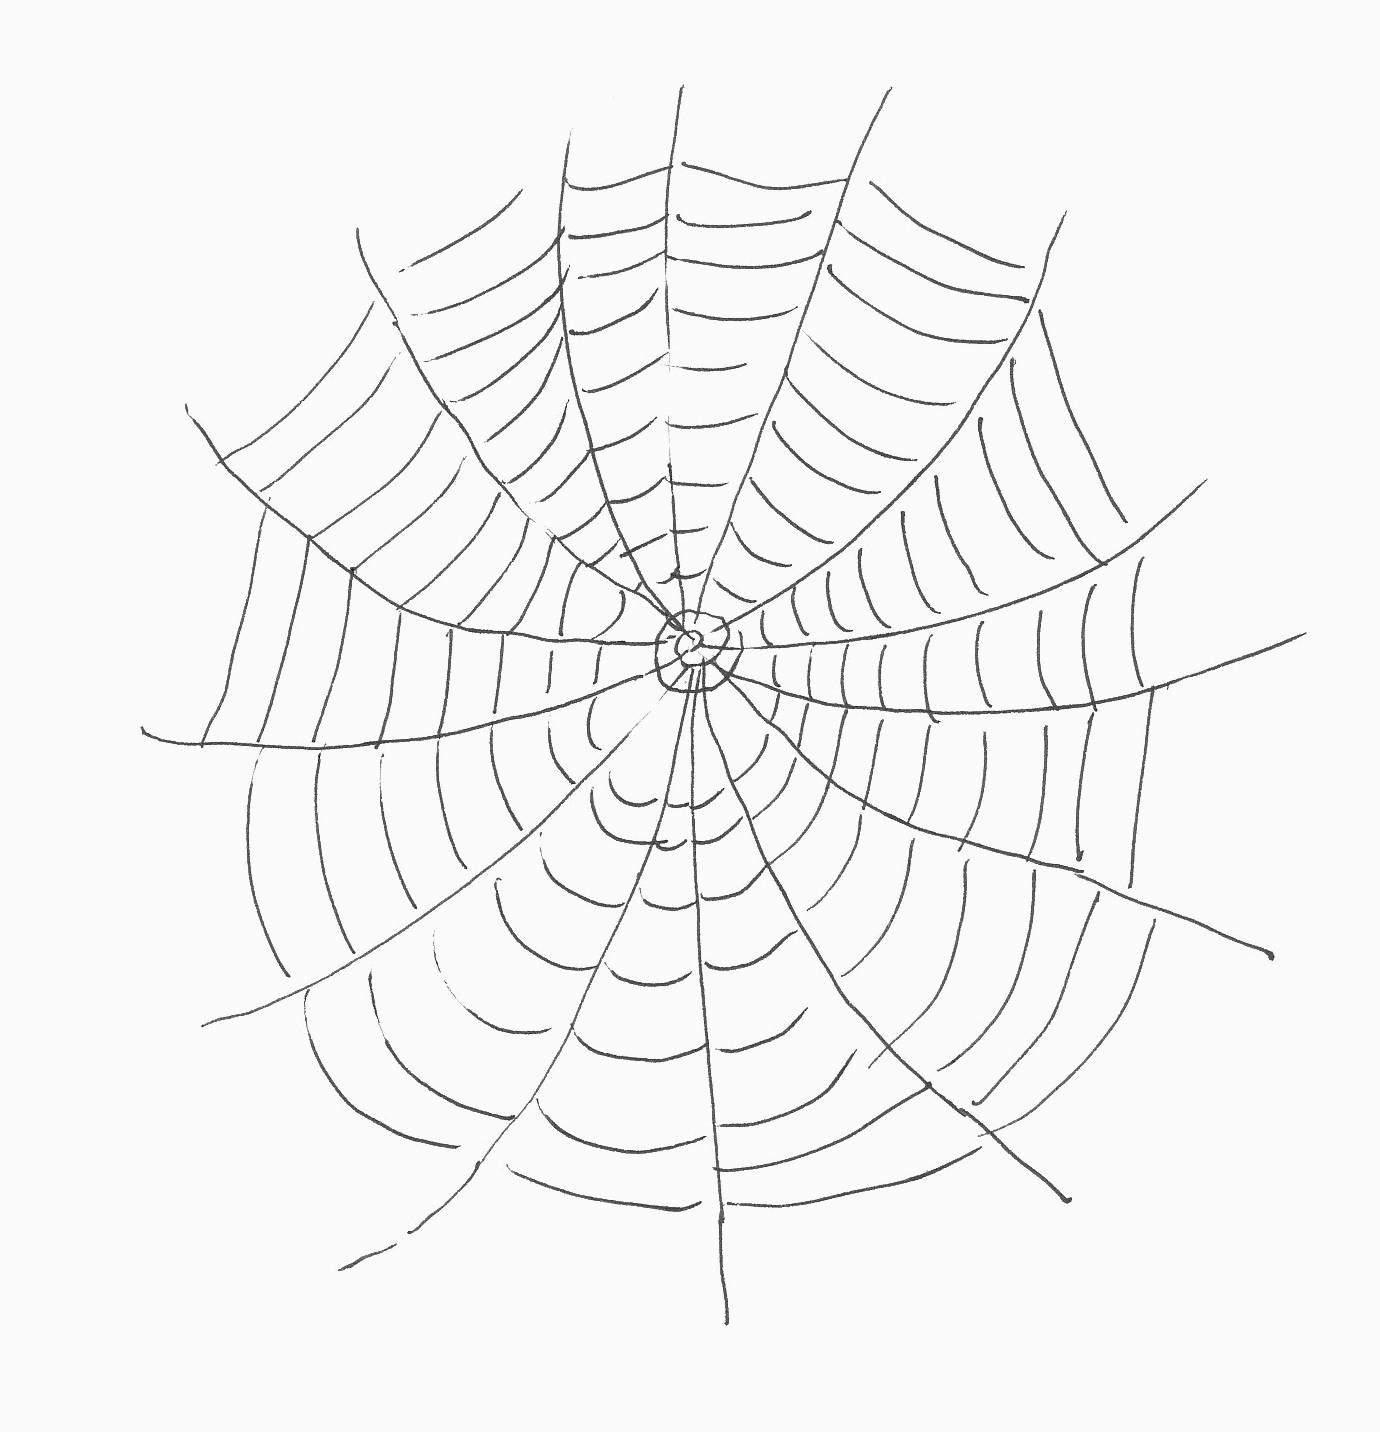 Free Printable Spider Web Coloring Pages For Kids For Coloring Pages - Free Printable Spider Web